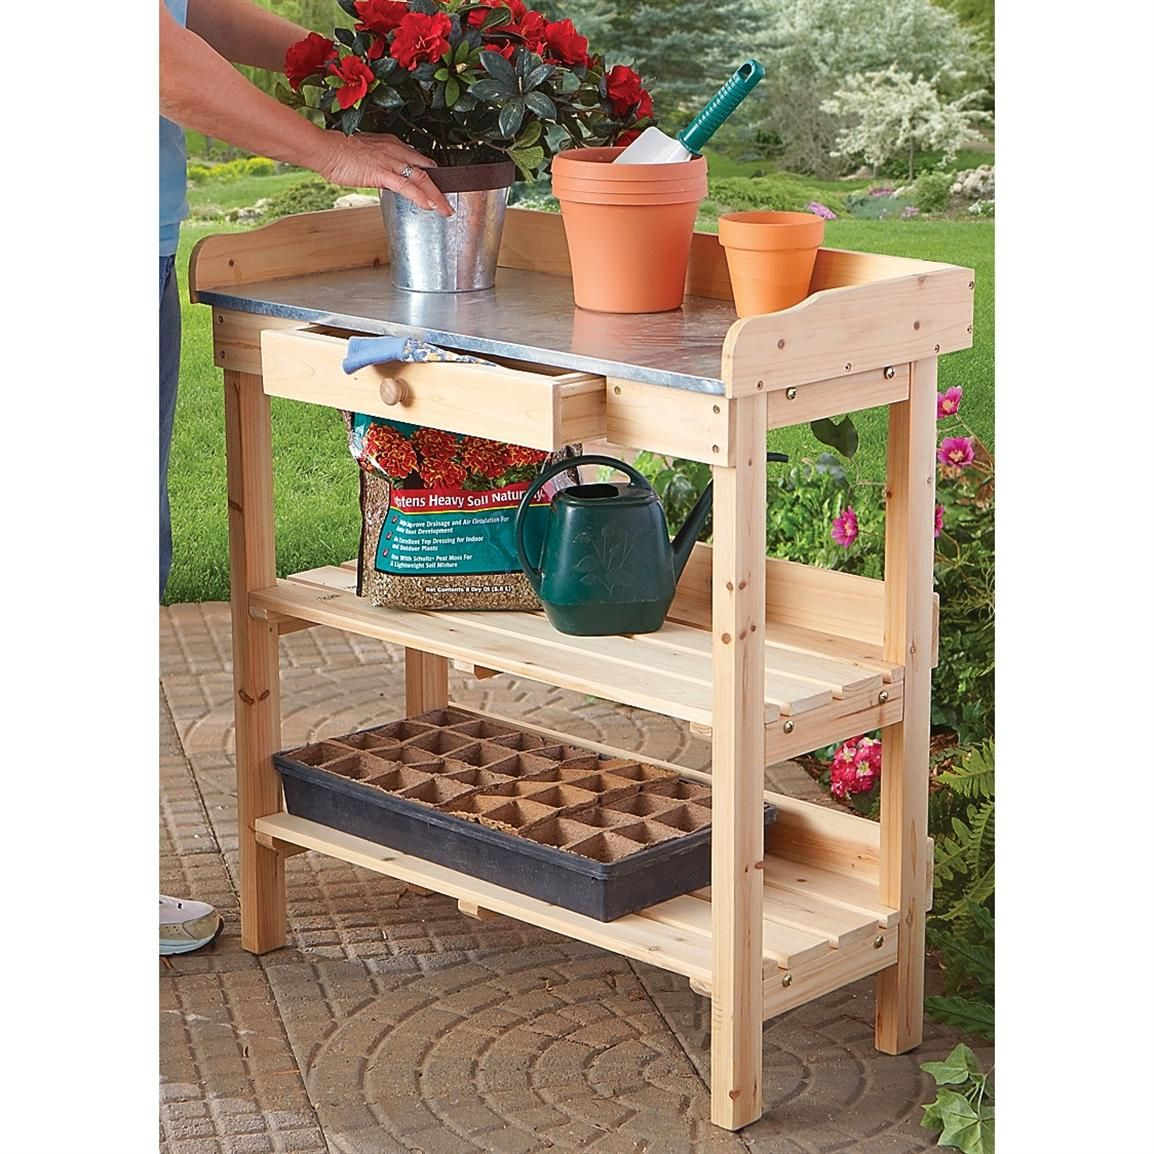 Finally, A Handy Garden Work Bench For Easy Potting Operations